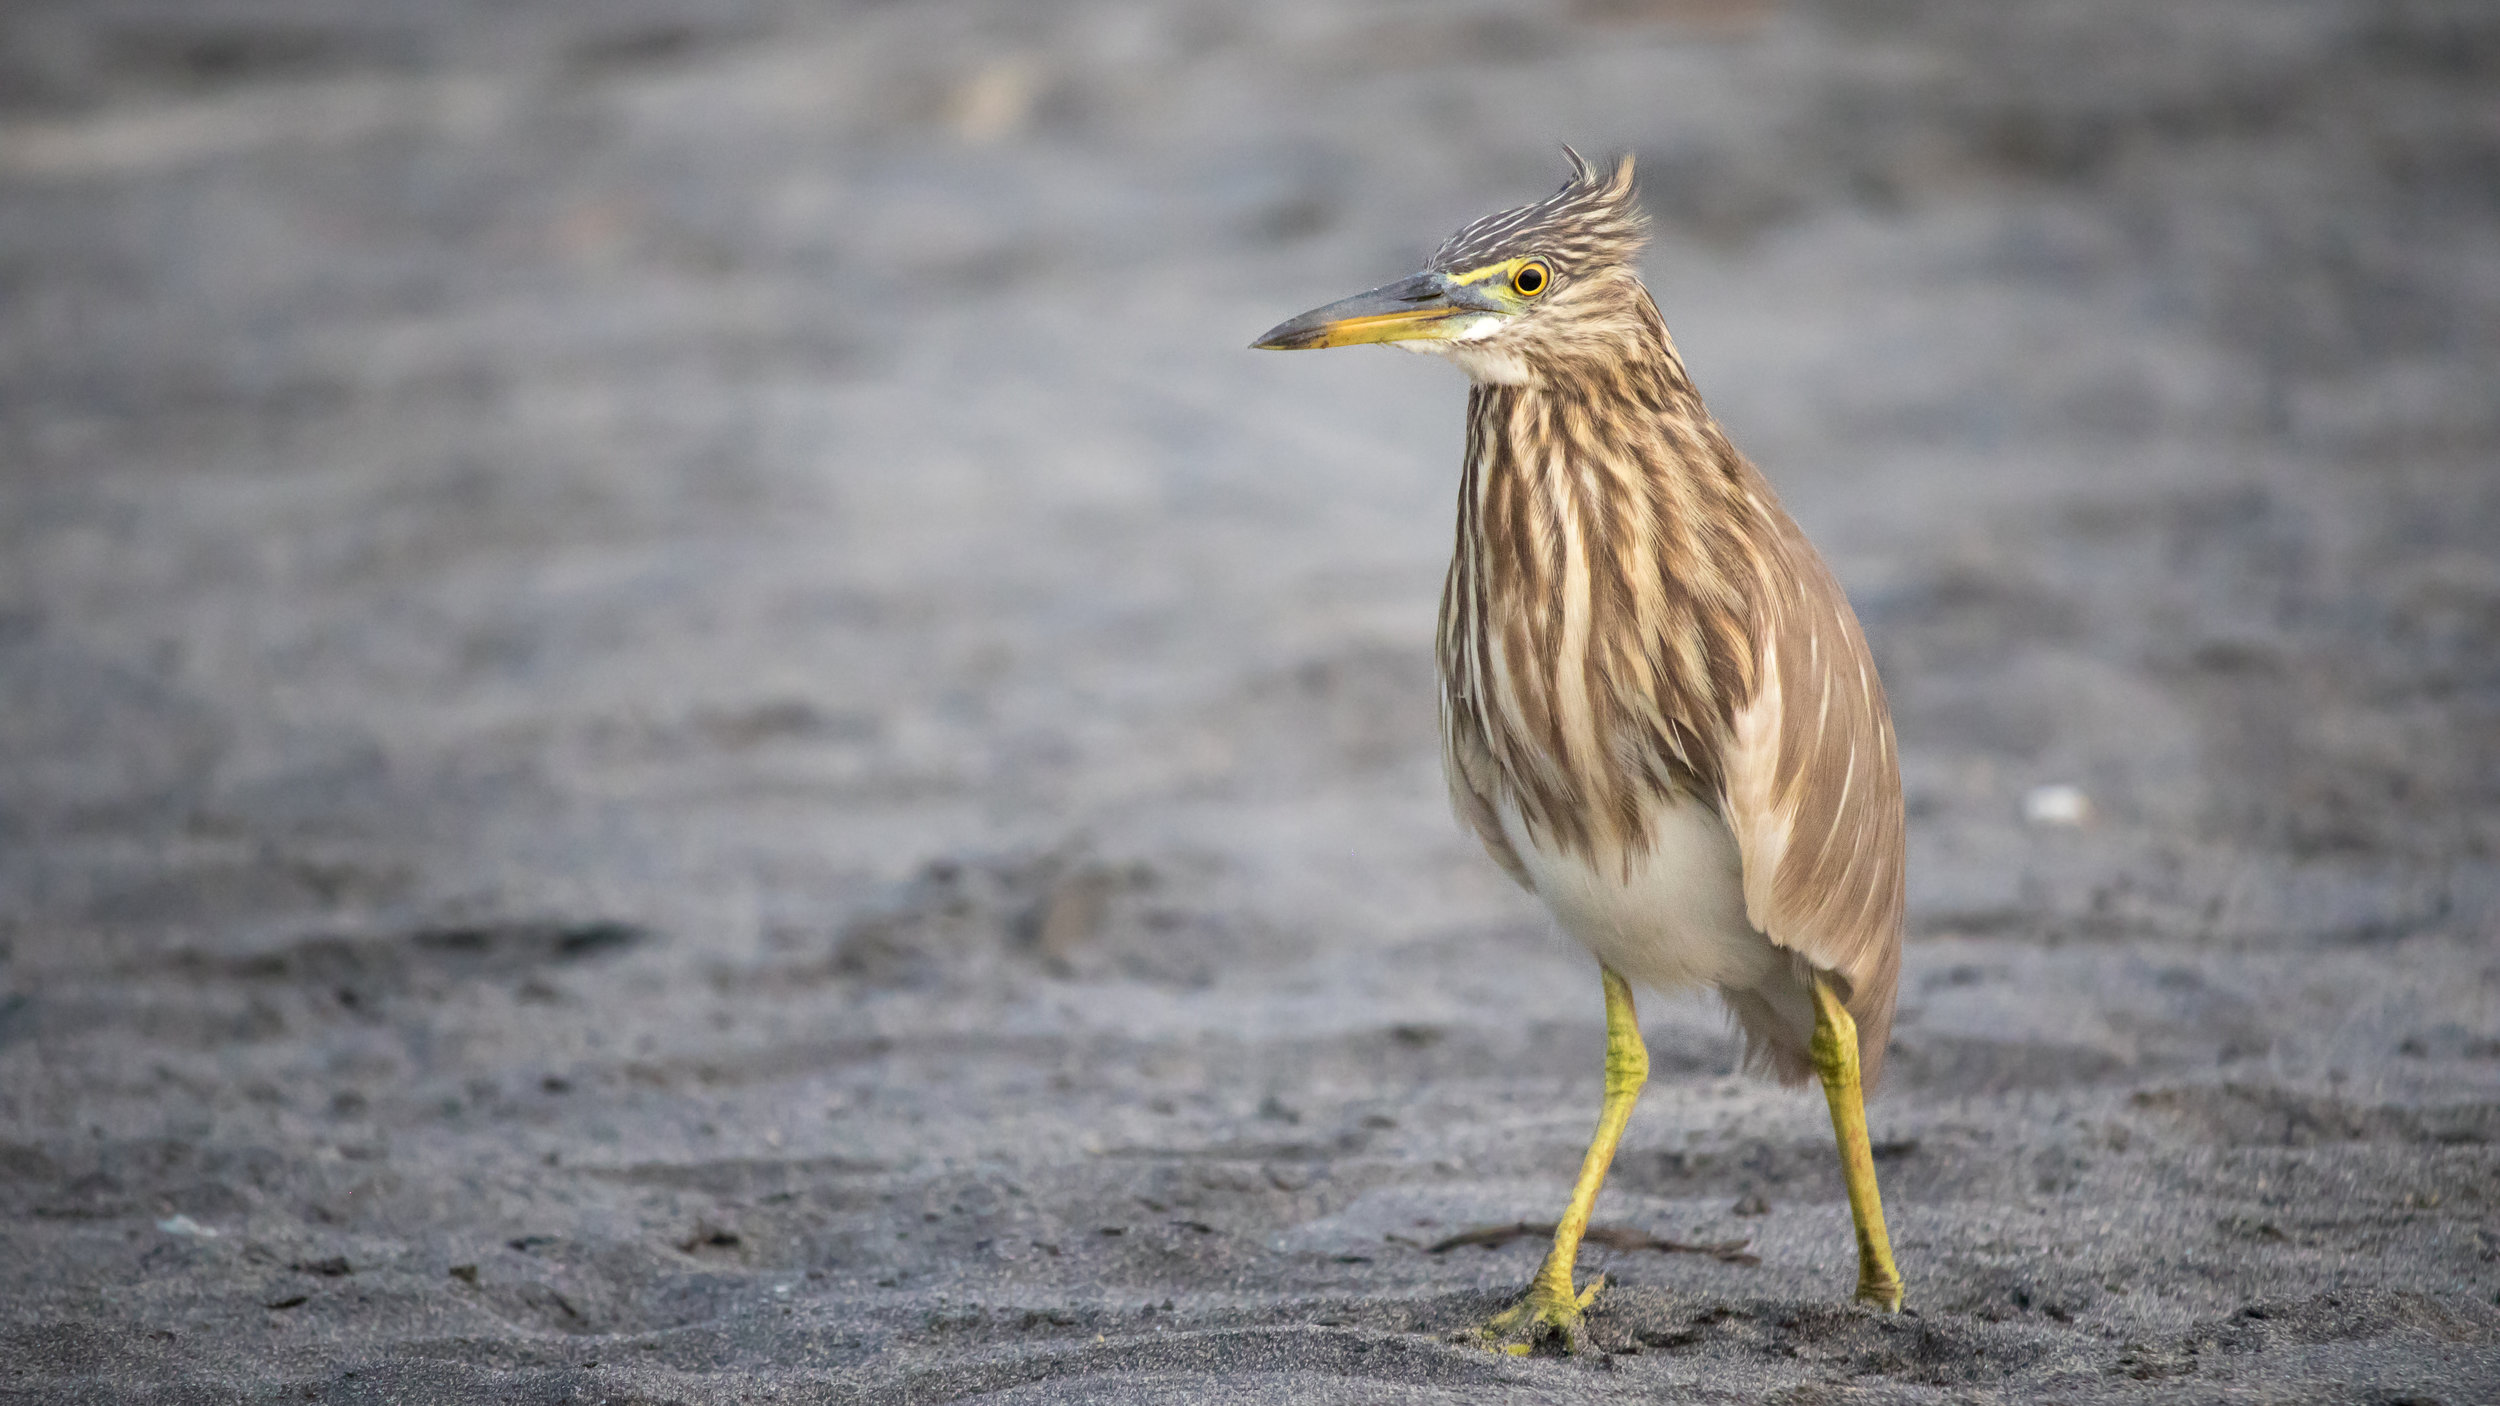 Indian Pond-heron (Ardeola grayii) in Varkala, Kerala, India. February 2015. Not baited. Not called in.